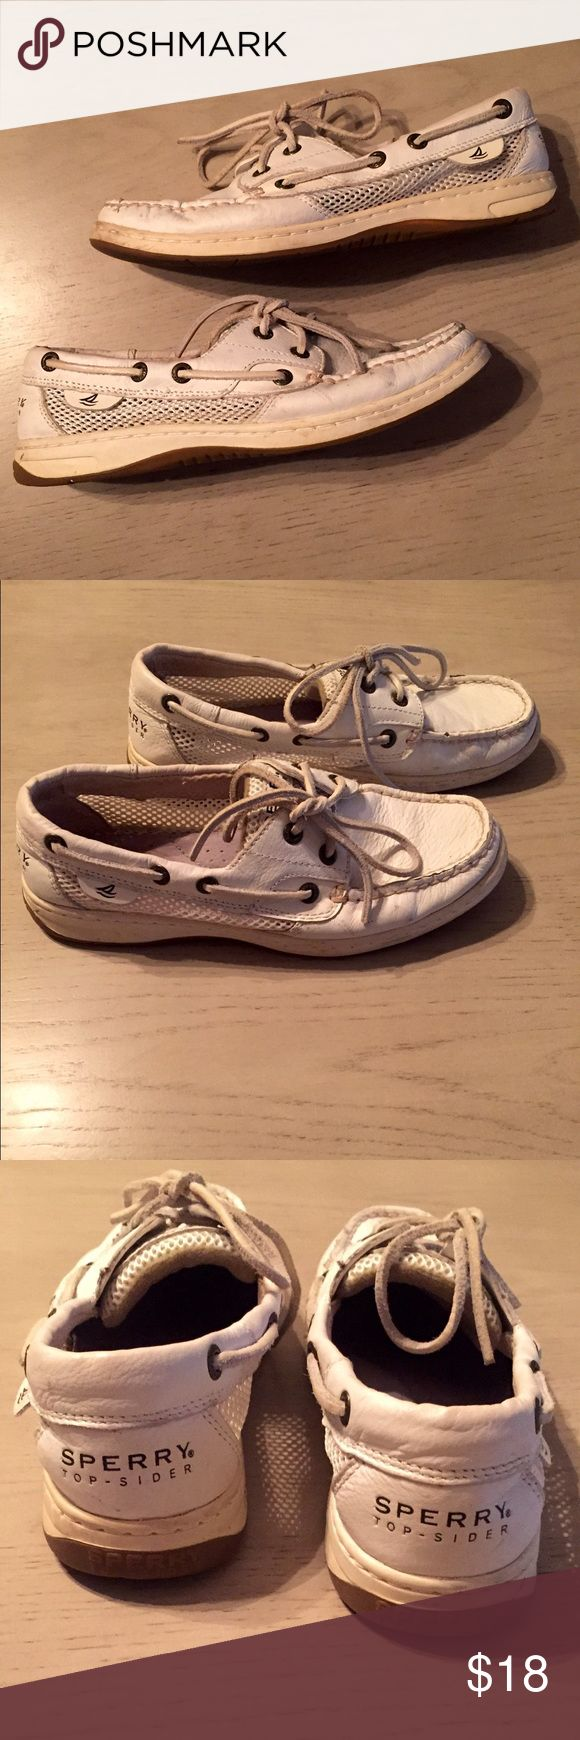 ✨SATURDAY SALE!✨ONLY $12! Off white SPERRYS • Size 6.5M • smoke & pet free home • ships same or next day • questions & offers are welcome! 👟 Sperry Shoes Flats & Loafers